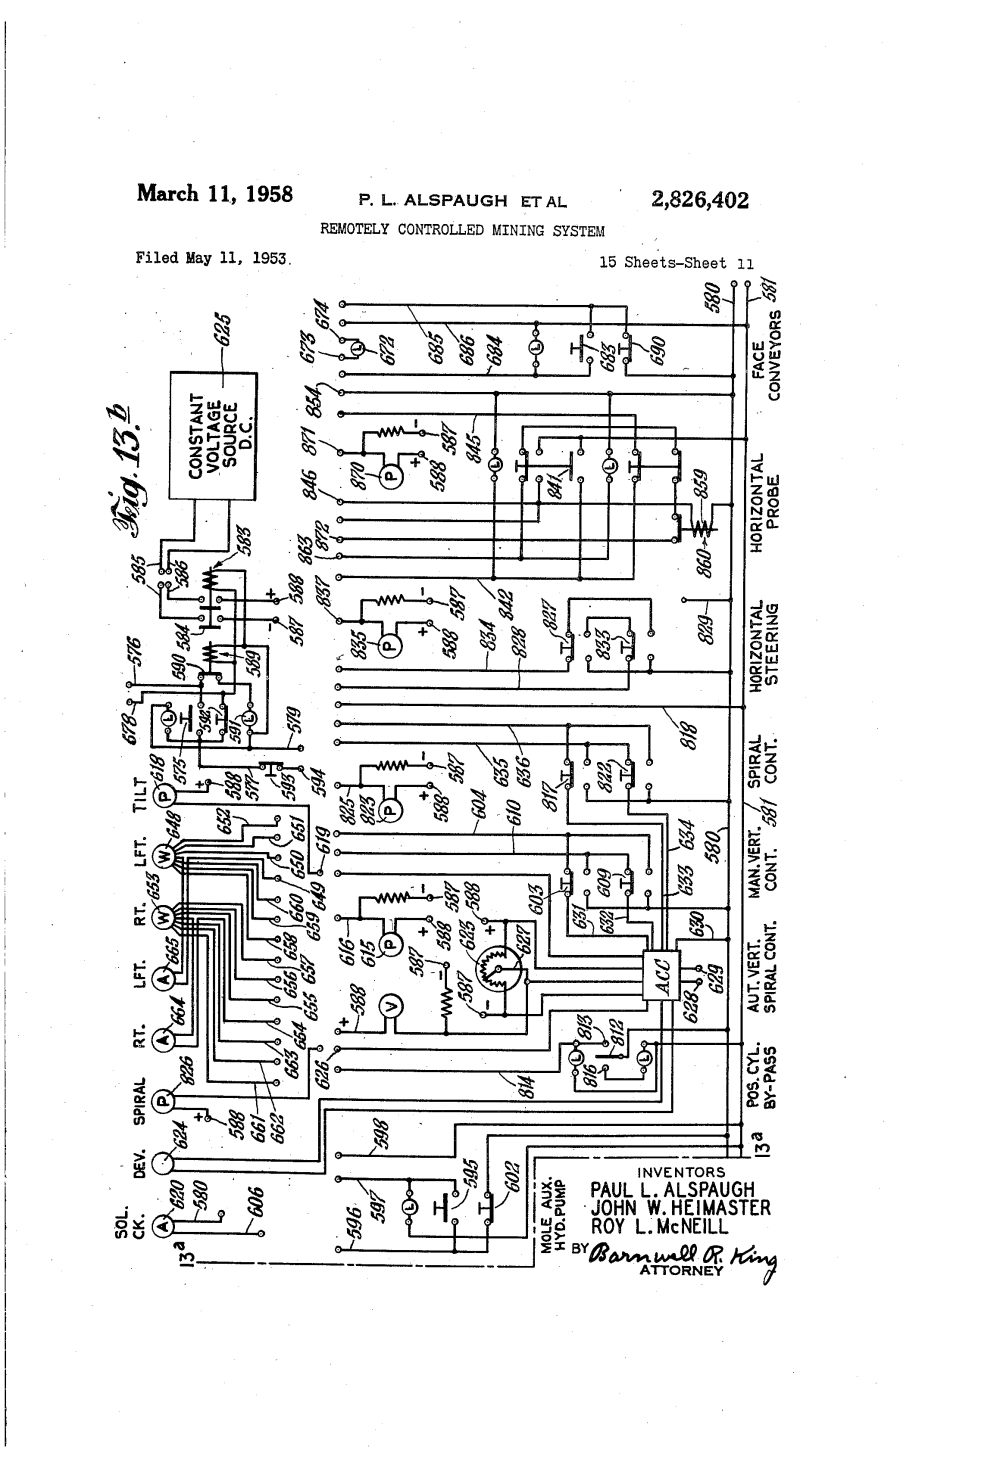 medium resolution of ih 584 wiring diagram wiring diagrams international 574 hydraulic schematic 1845c wiring diagram case 440ct skid